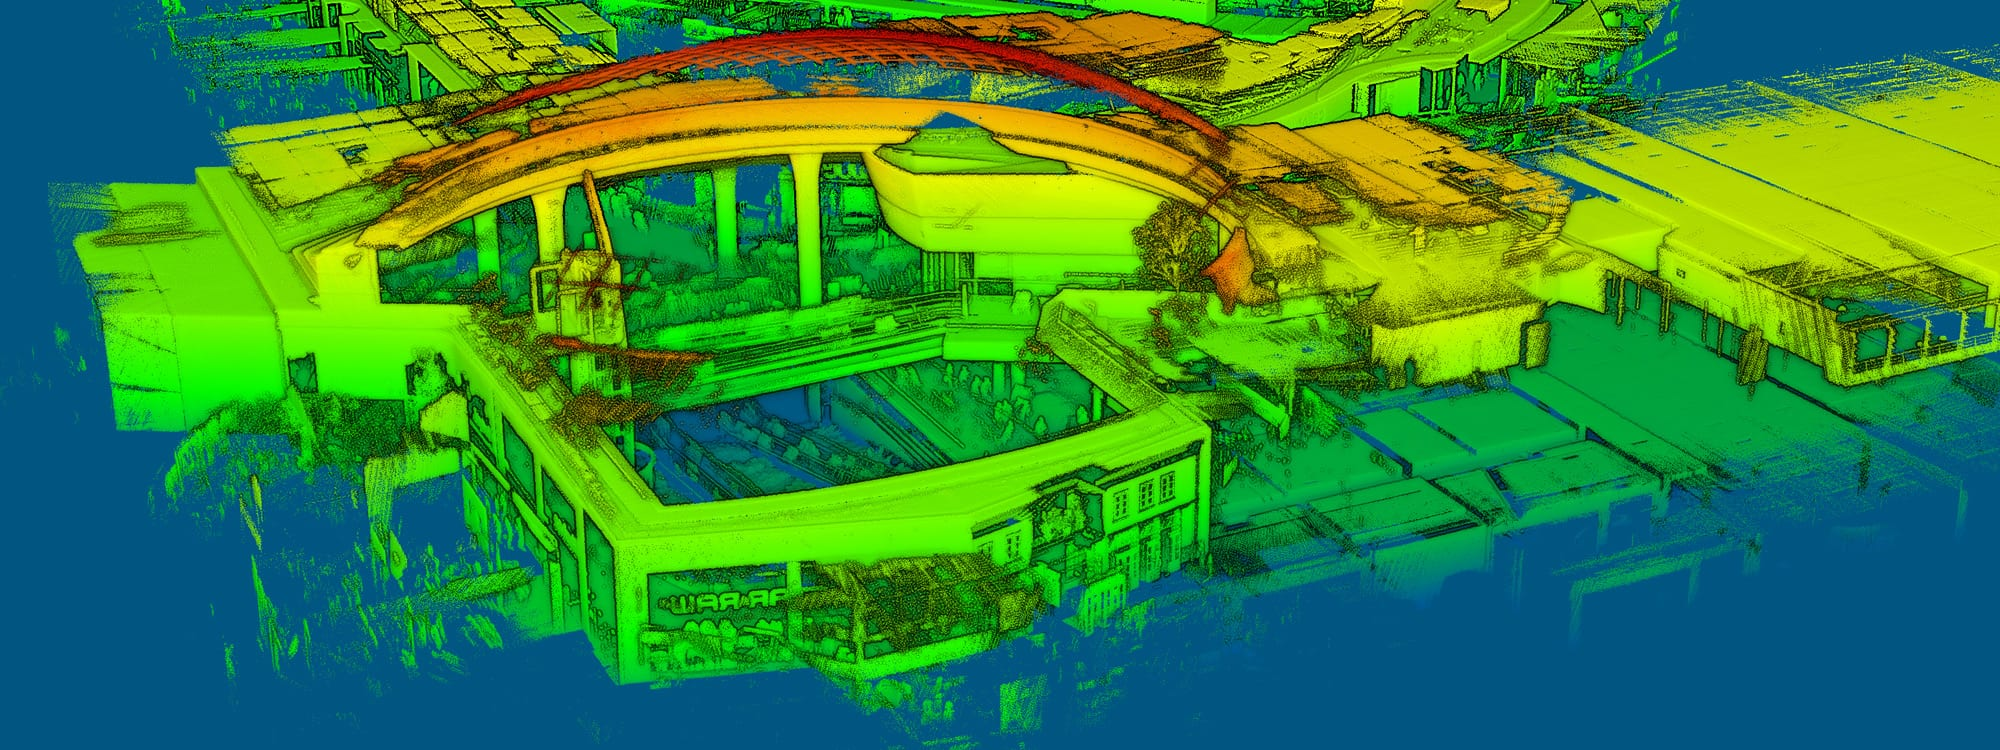 Inertial Navigation Systems for Indoor Mapping Applications